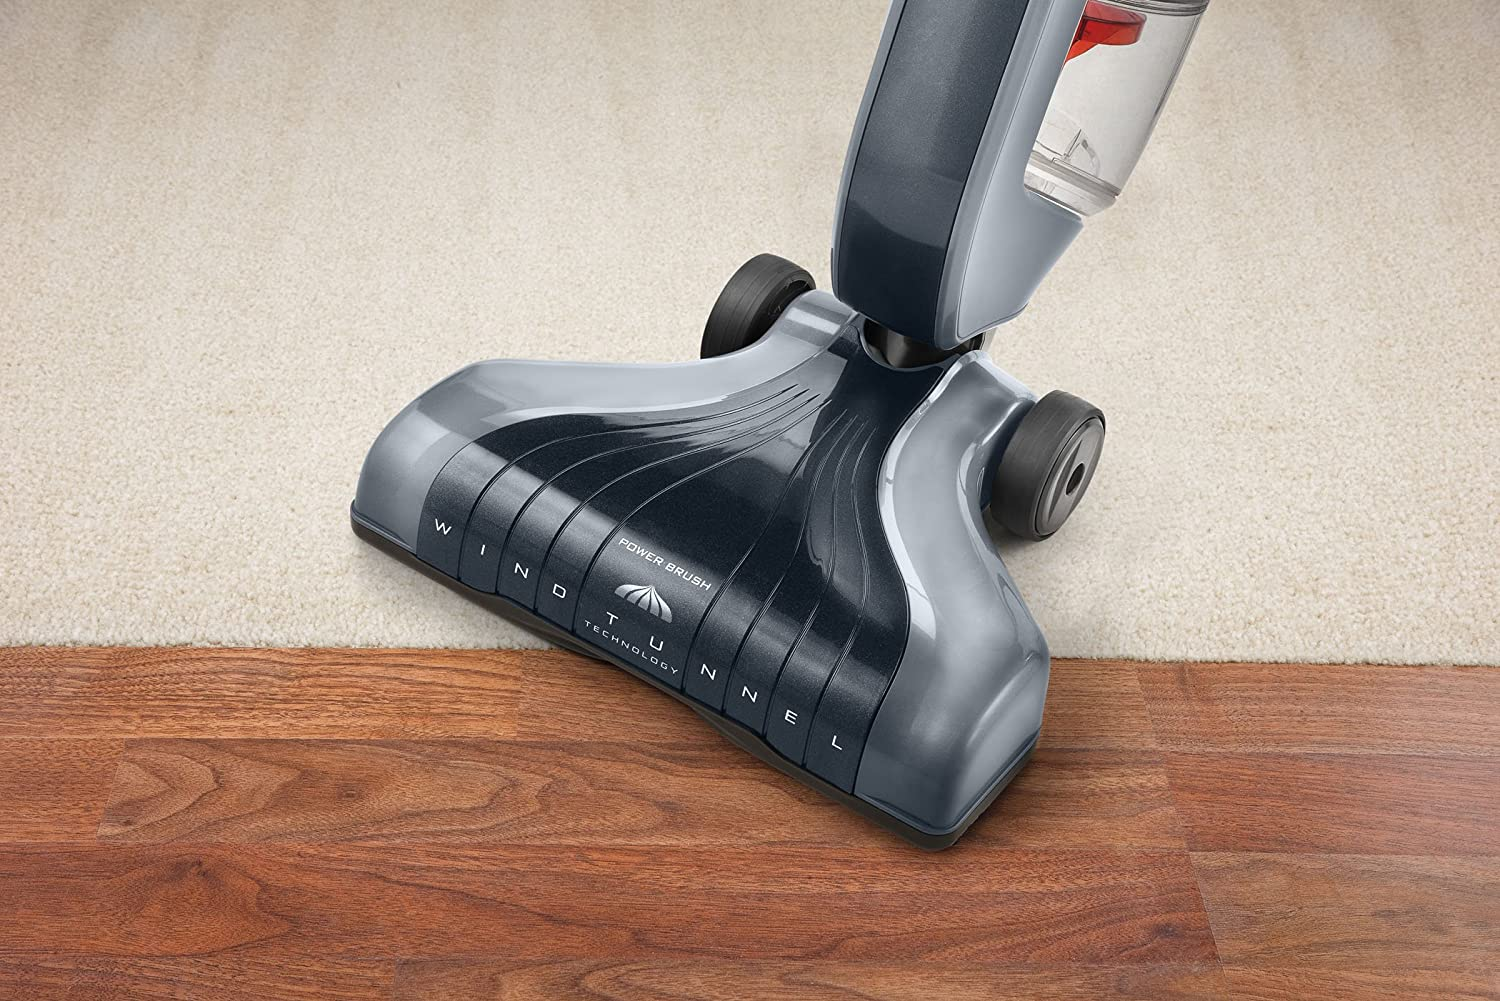 amazoncom hoover vacuum cleaner linx bagless corded cyclonic lightweight stick vacuum sh20030 household stick vacuums